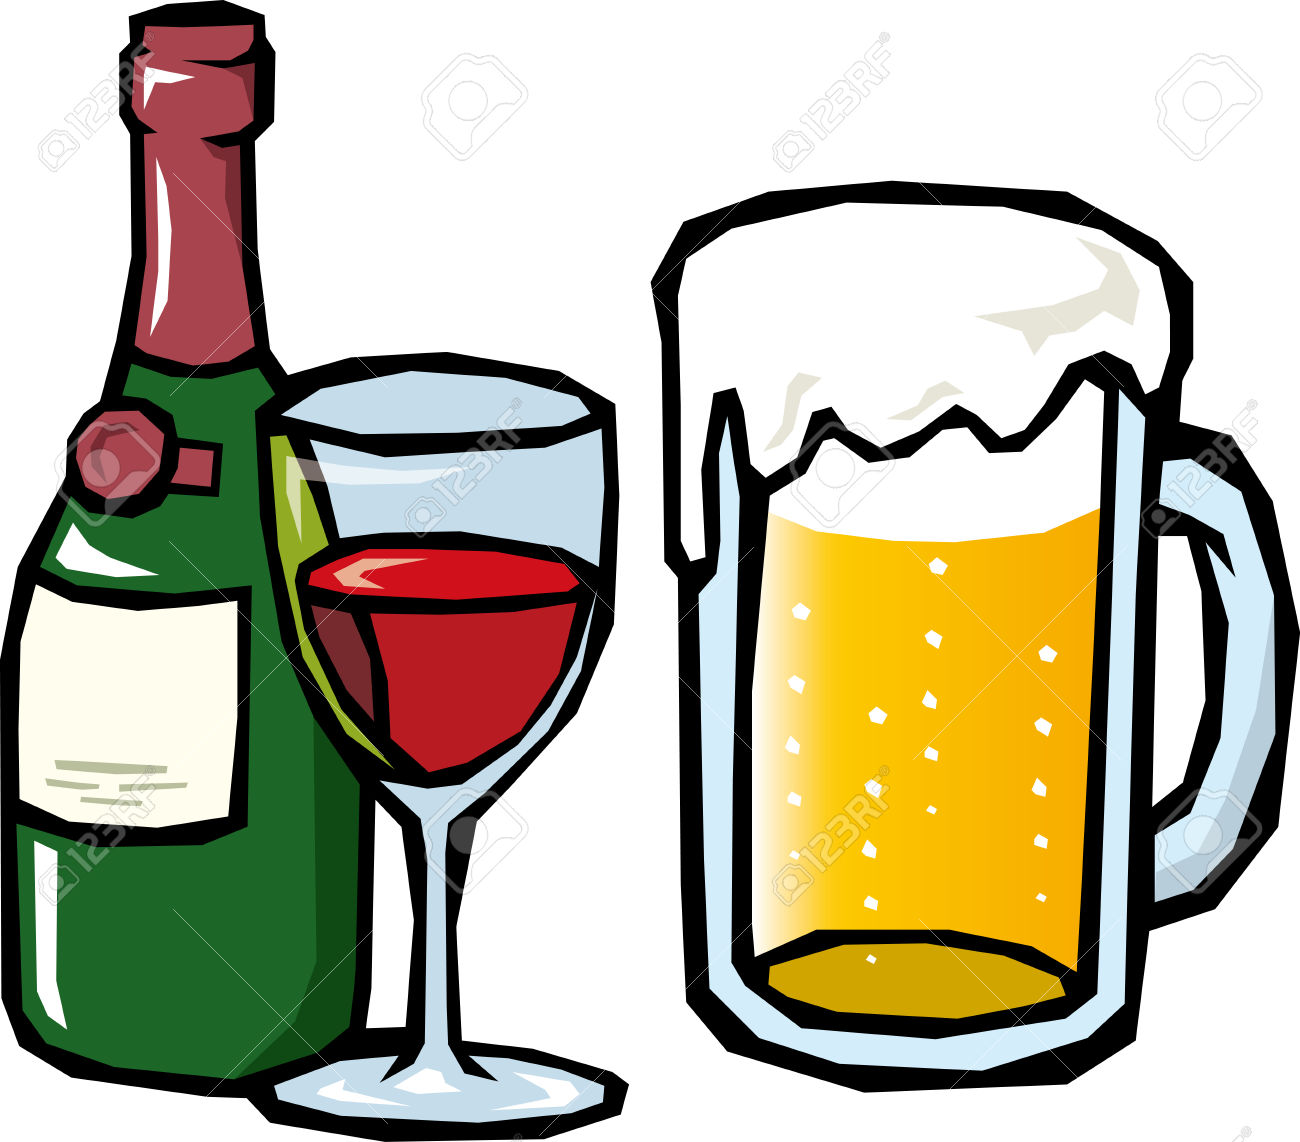 free beer clipart - photo #9